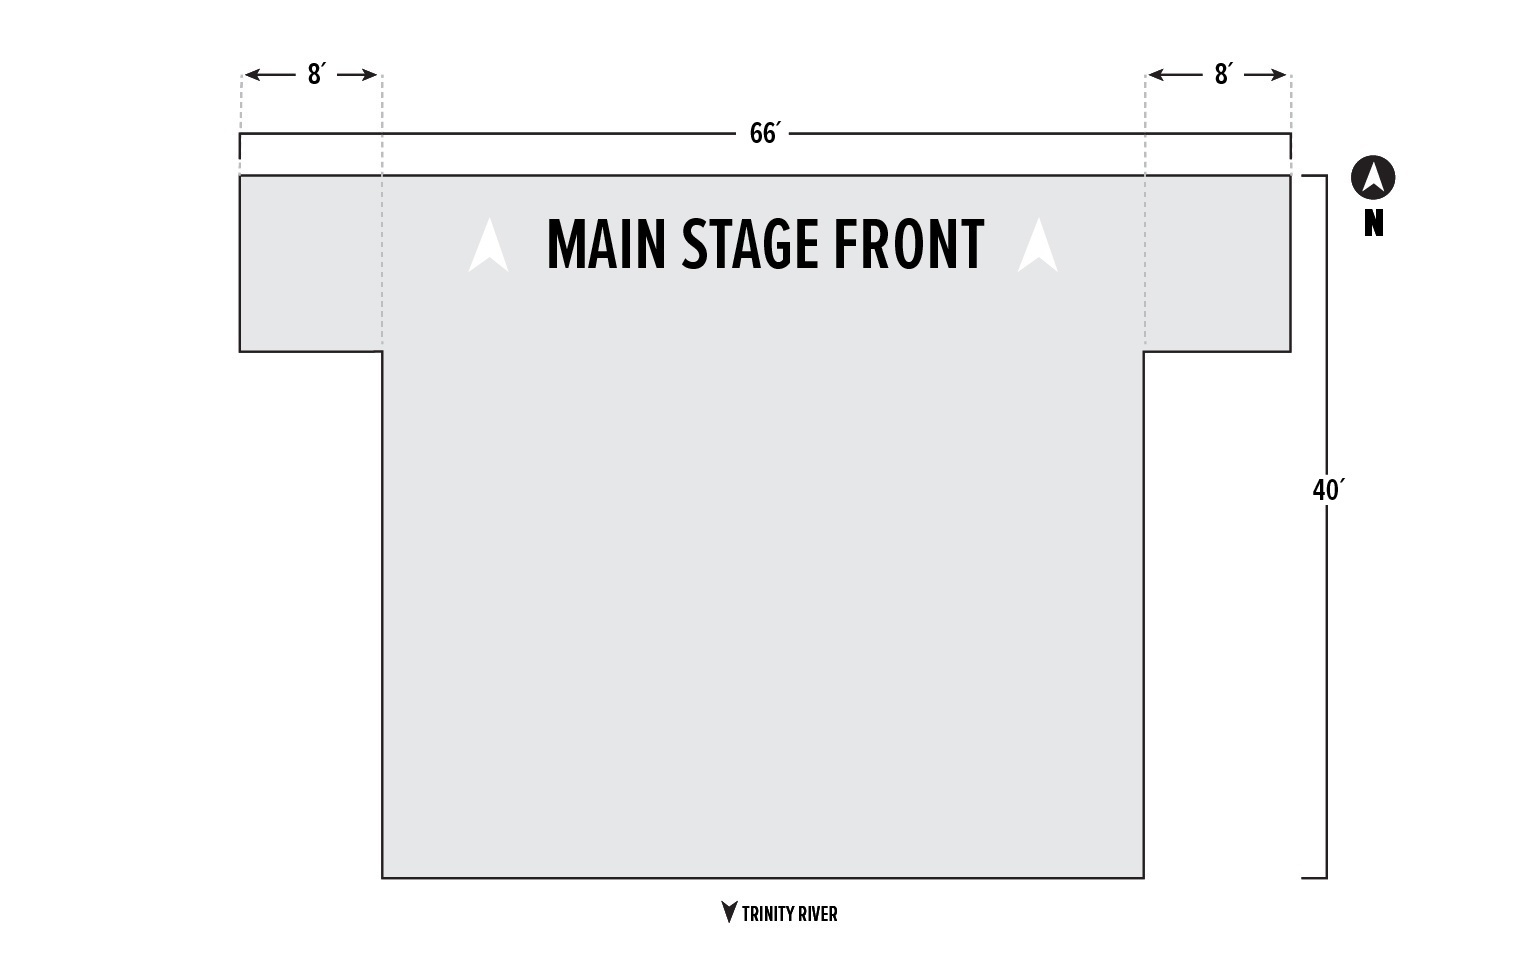 North Shore Stage Diagram at Panther Island Pavilion